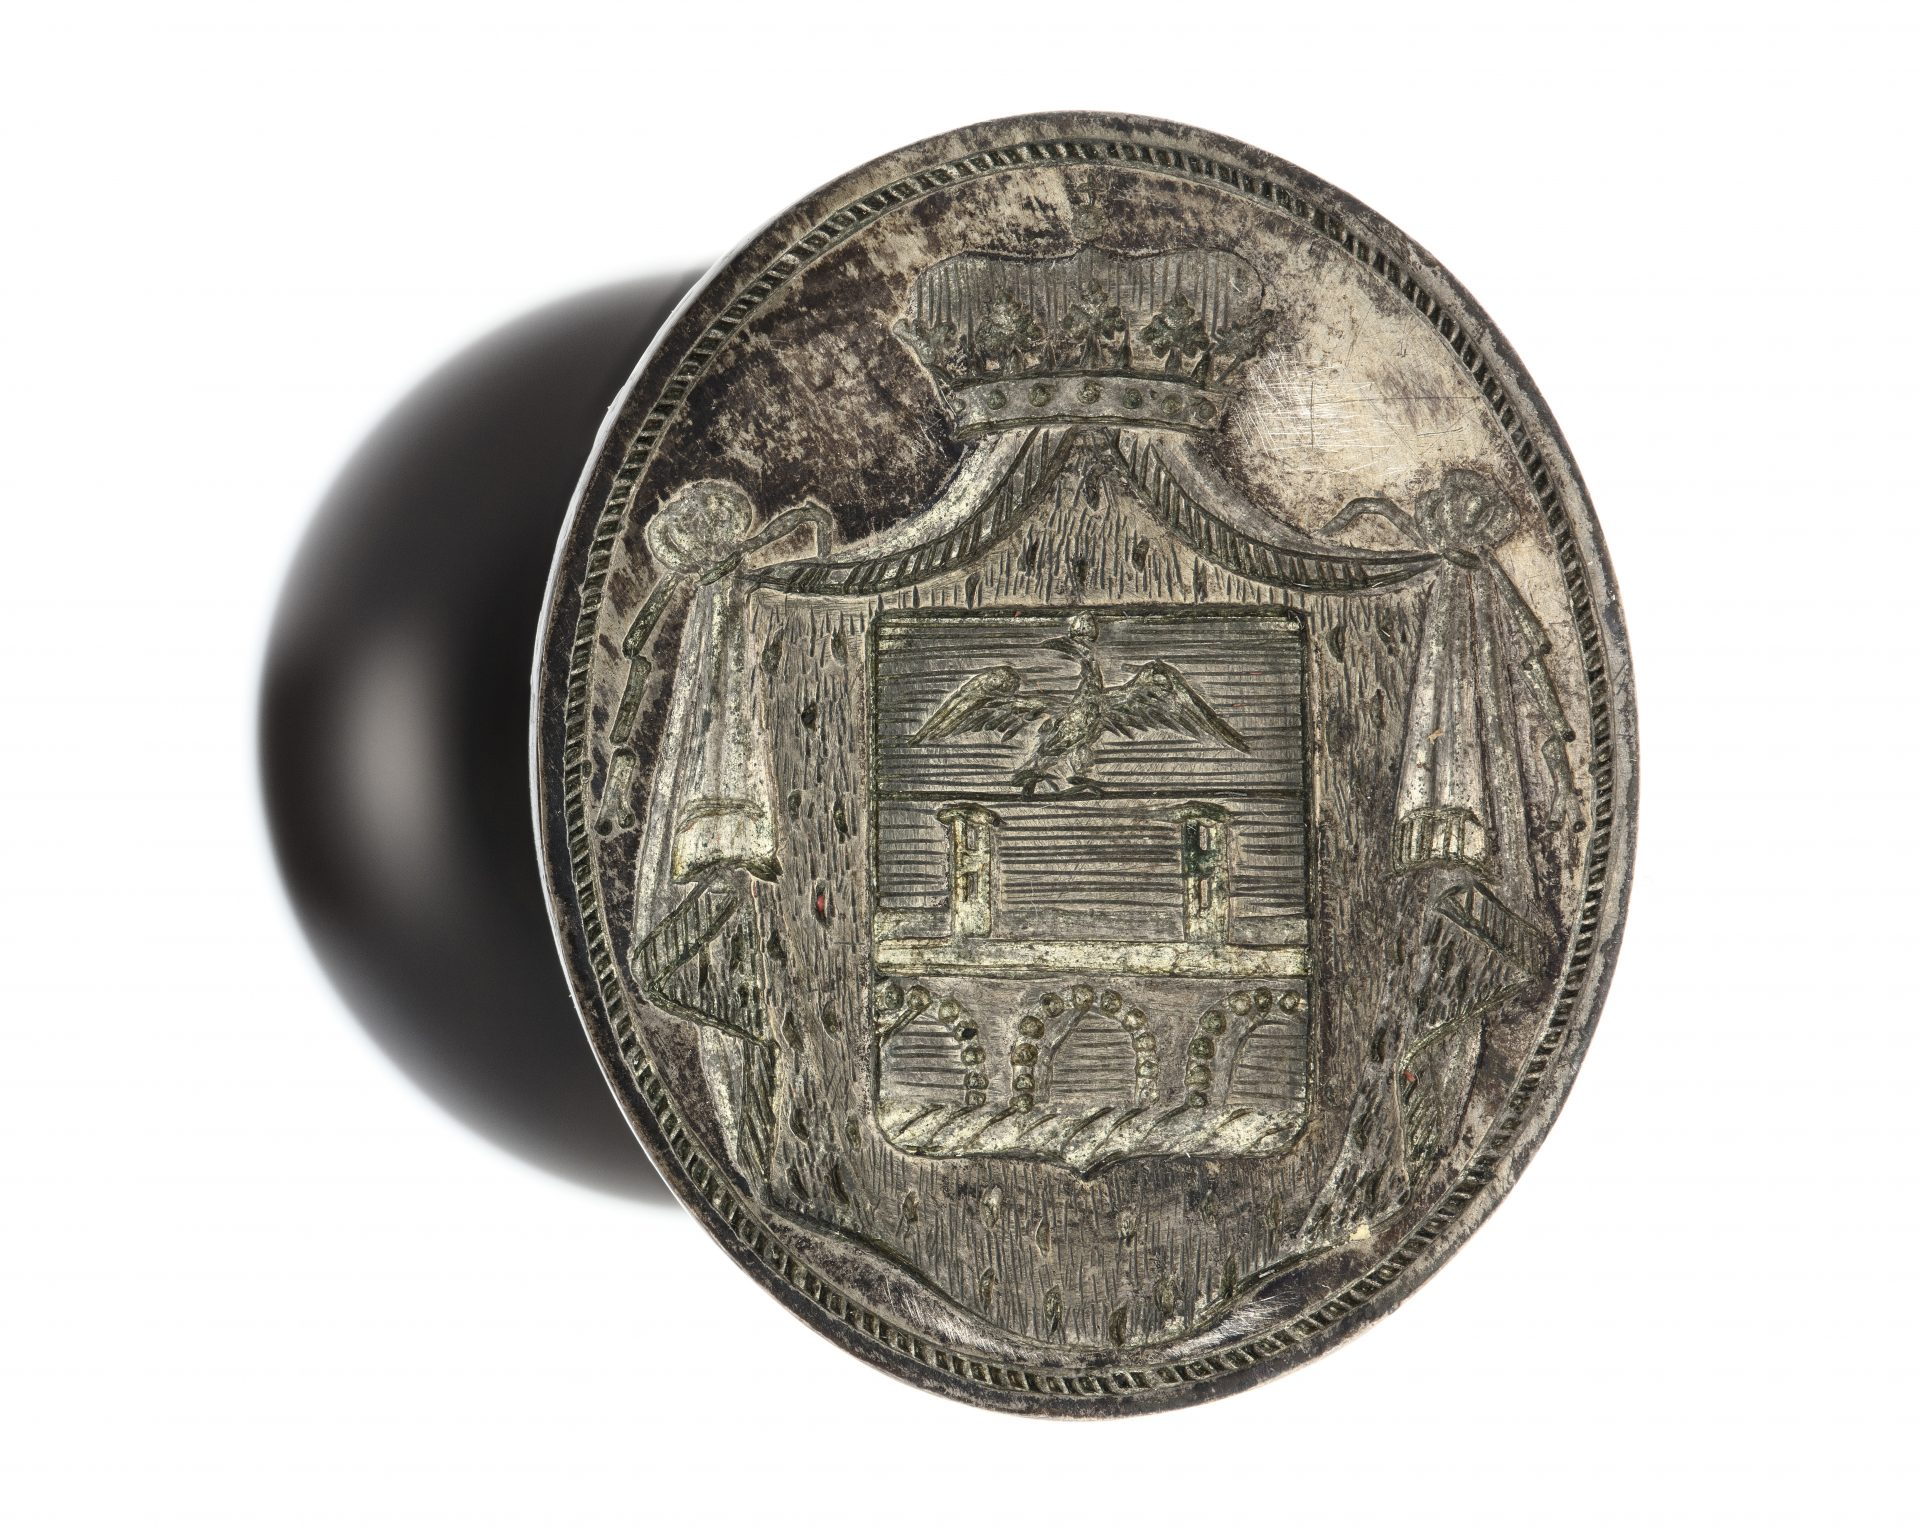 A seal of steel with an engraved coat of arms.